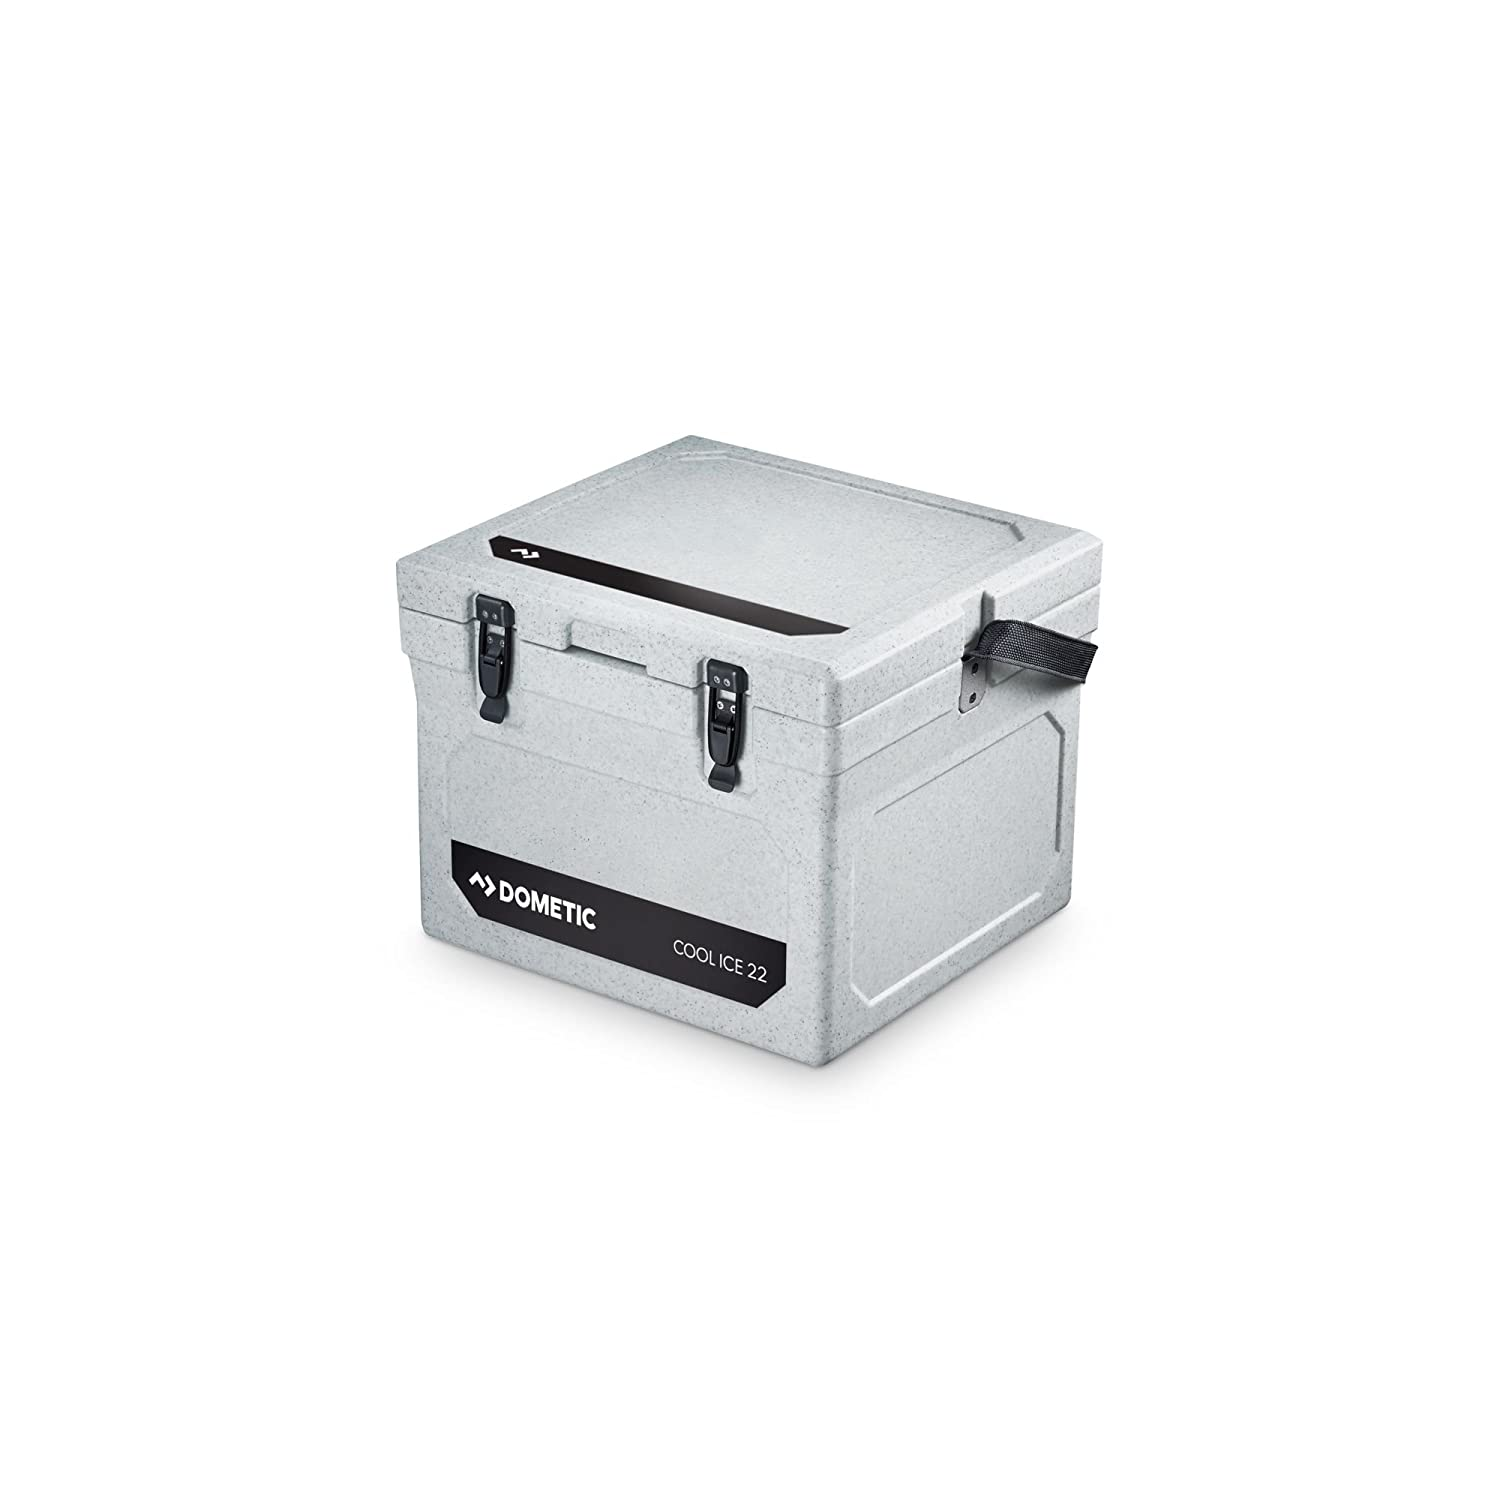 Dometic Cool-Ice CI-22, 22 Litre Passive Coolbox, Stone Waeco 9600000501